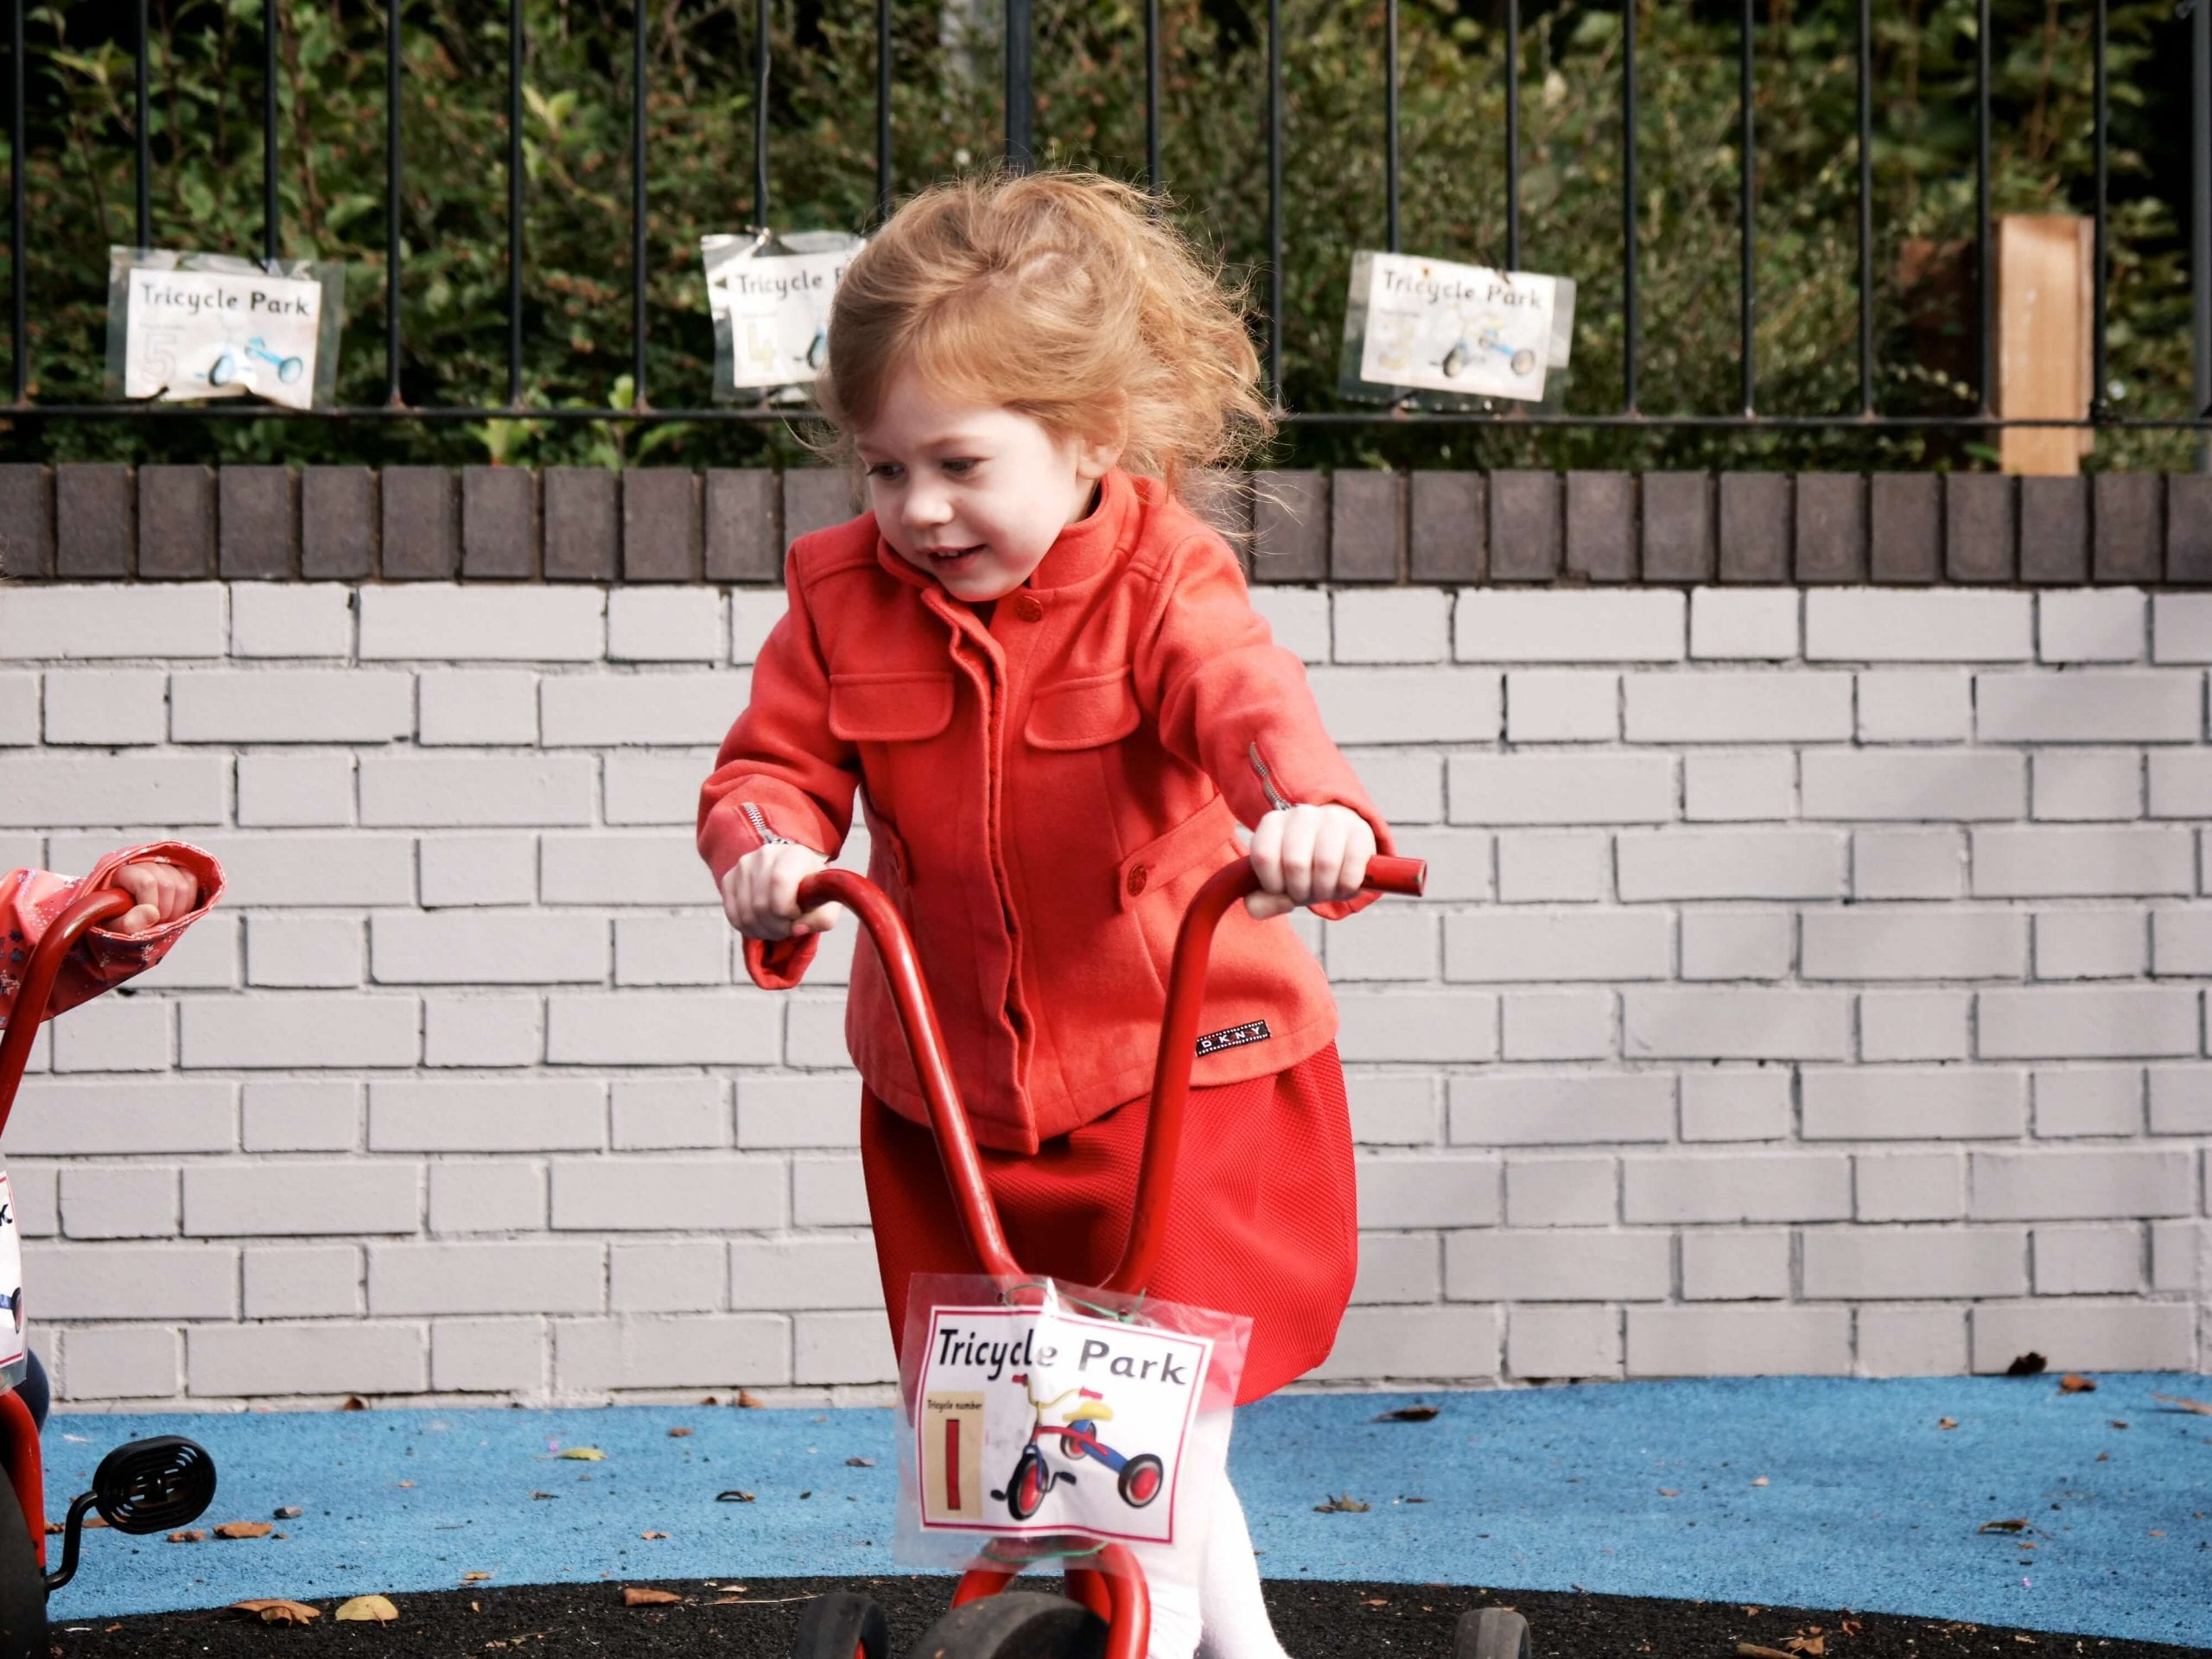 image of a child playing happily at nursery